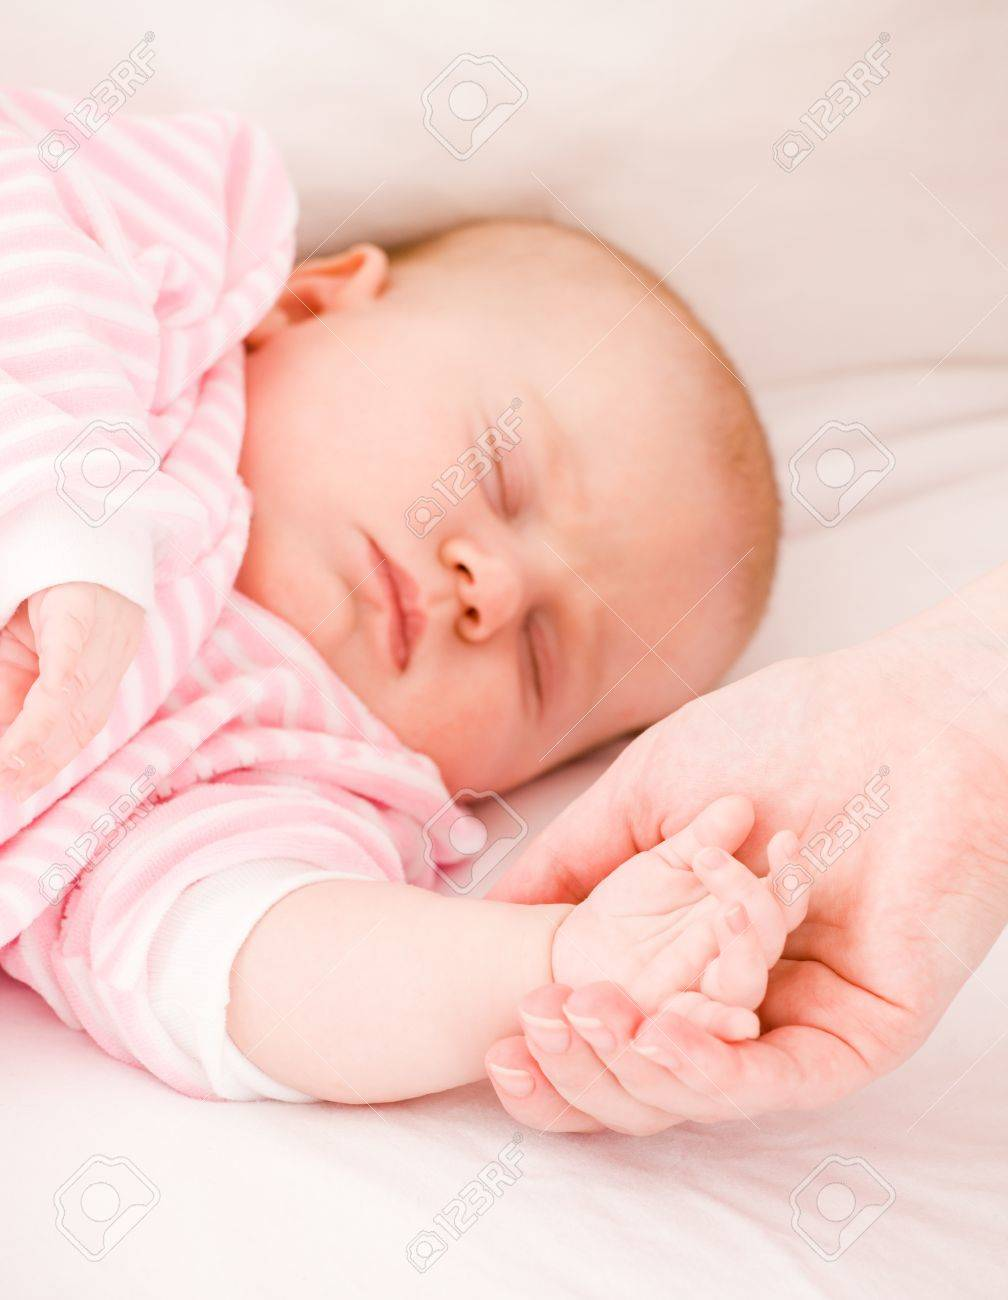 Mum holds by the hand the sleeping baby. Stock Photo - 9958491